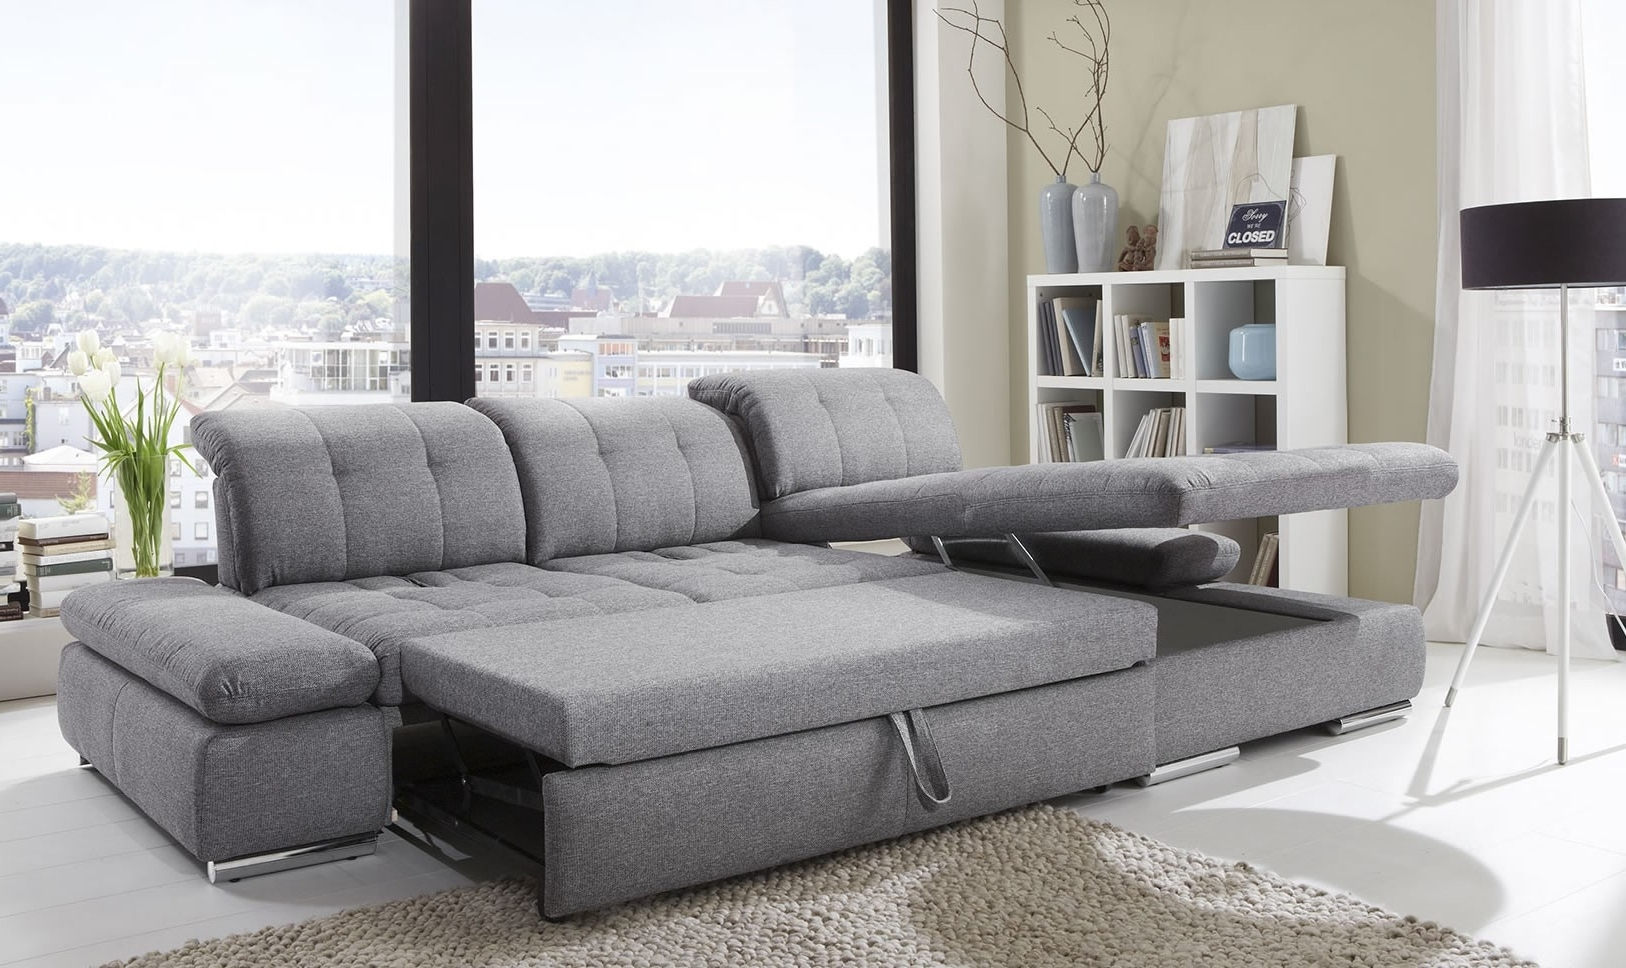 Sleeper Chaises With Regard To Popular Alpine Sectional Sleeper Sofa, Left Arm Chaise Facing, Black (View 10 of 15)